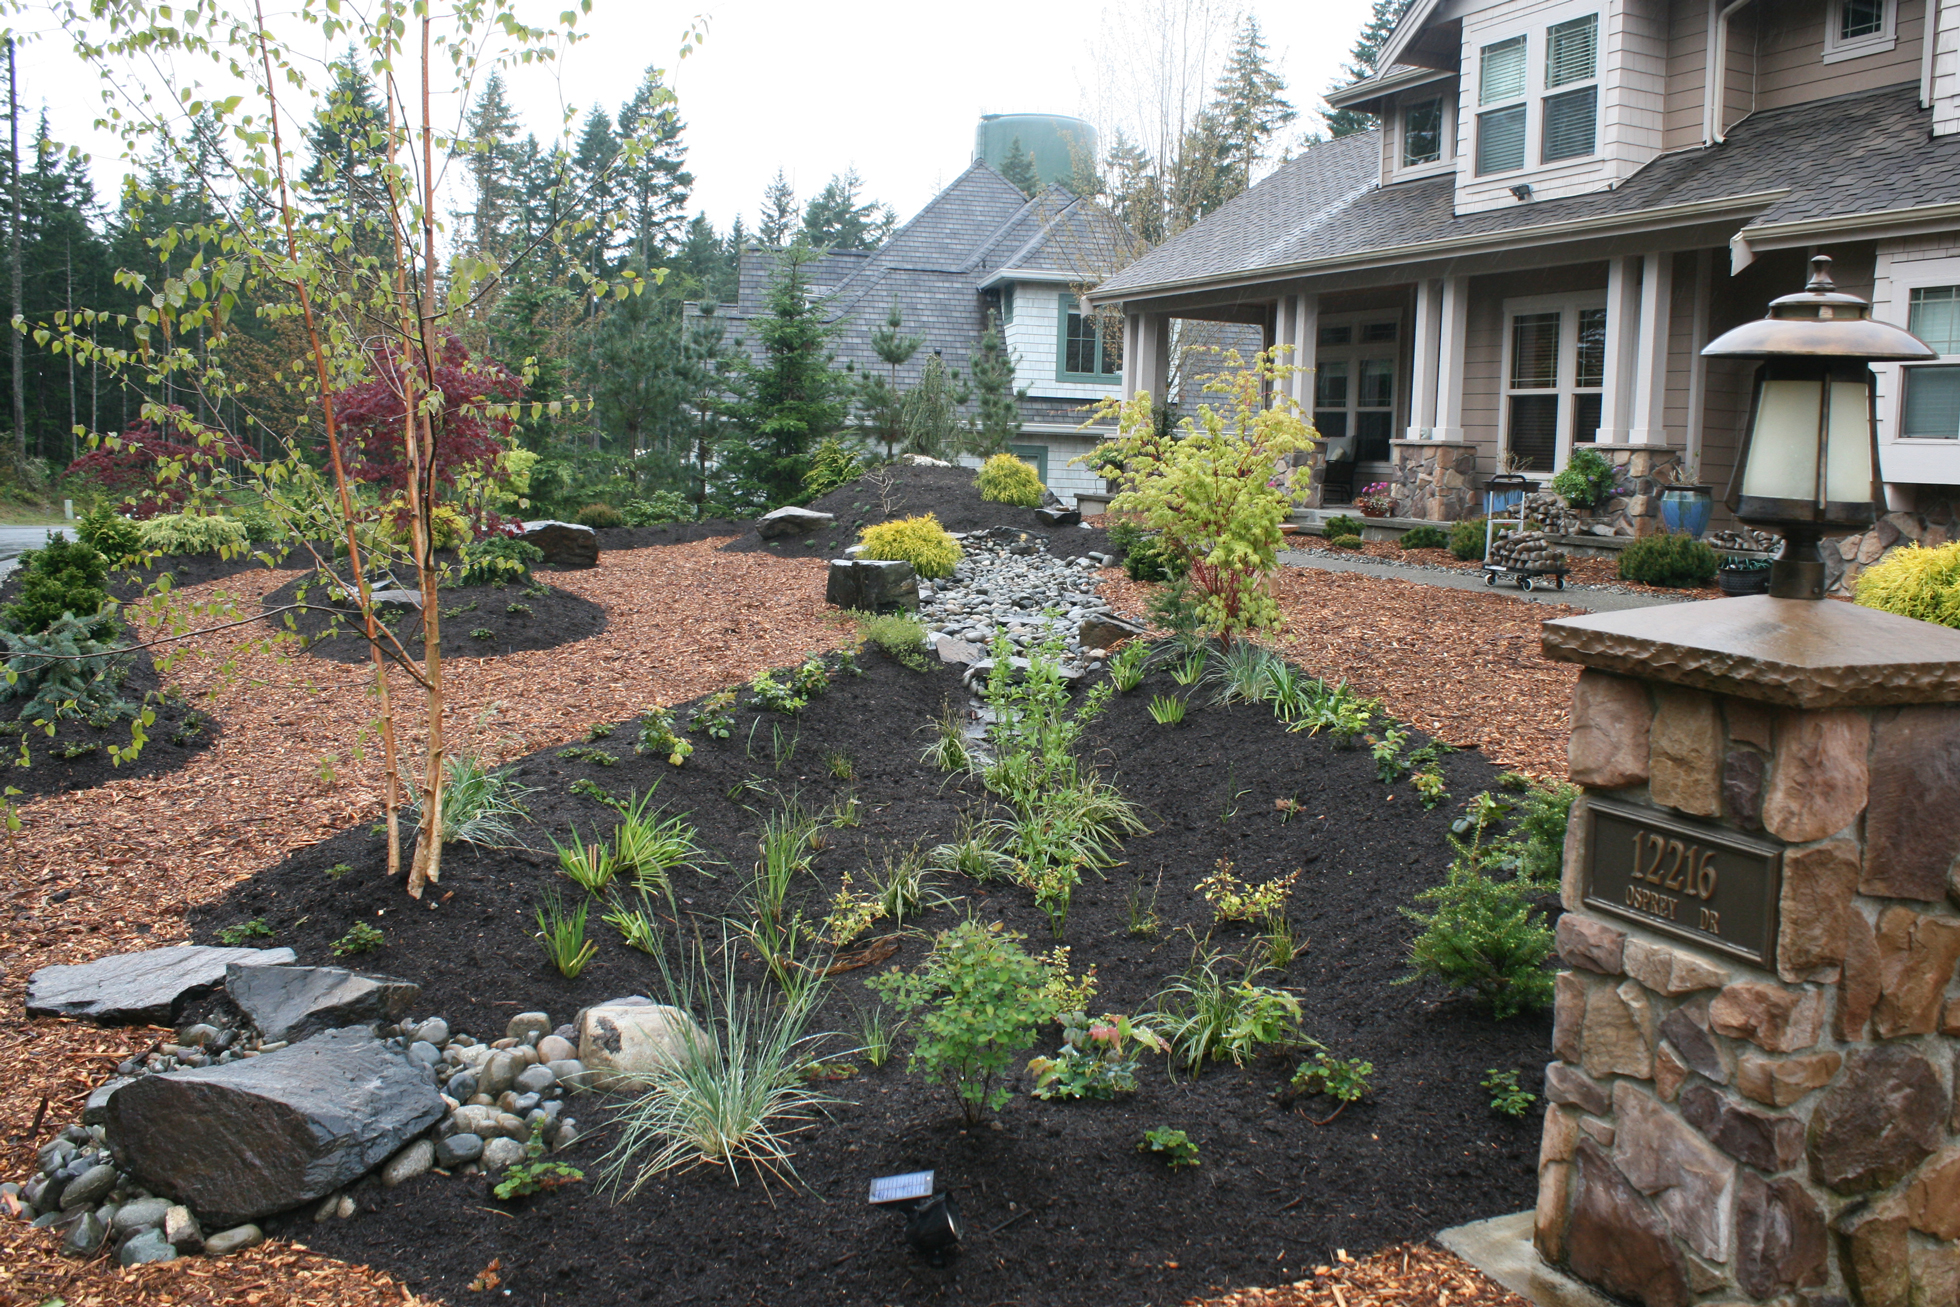 Lush rain garden in front yard with brown mulch, plants